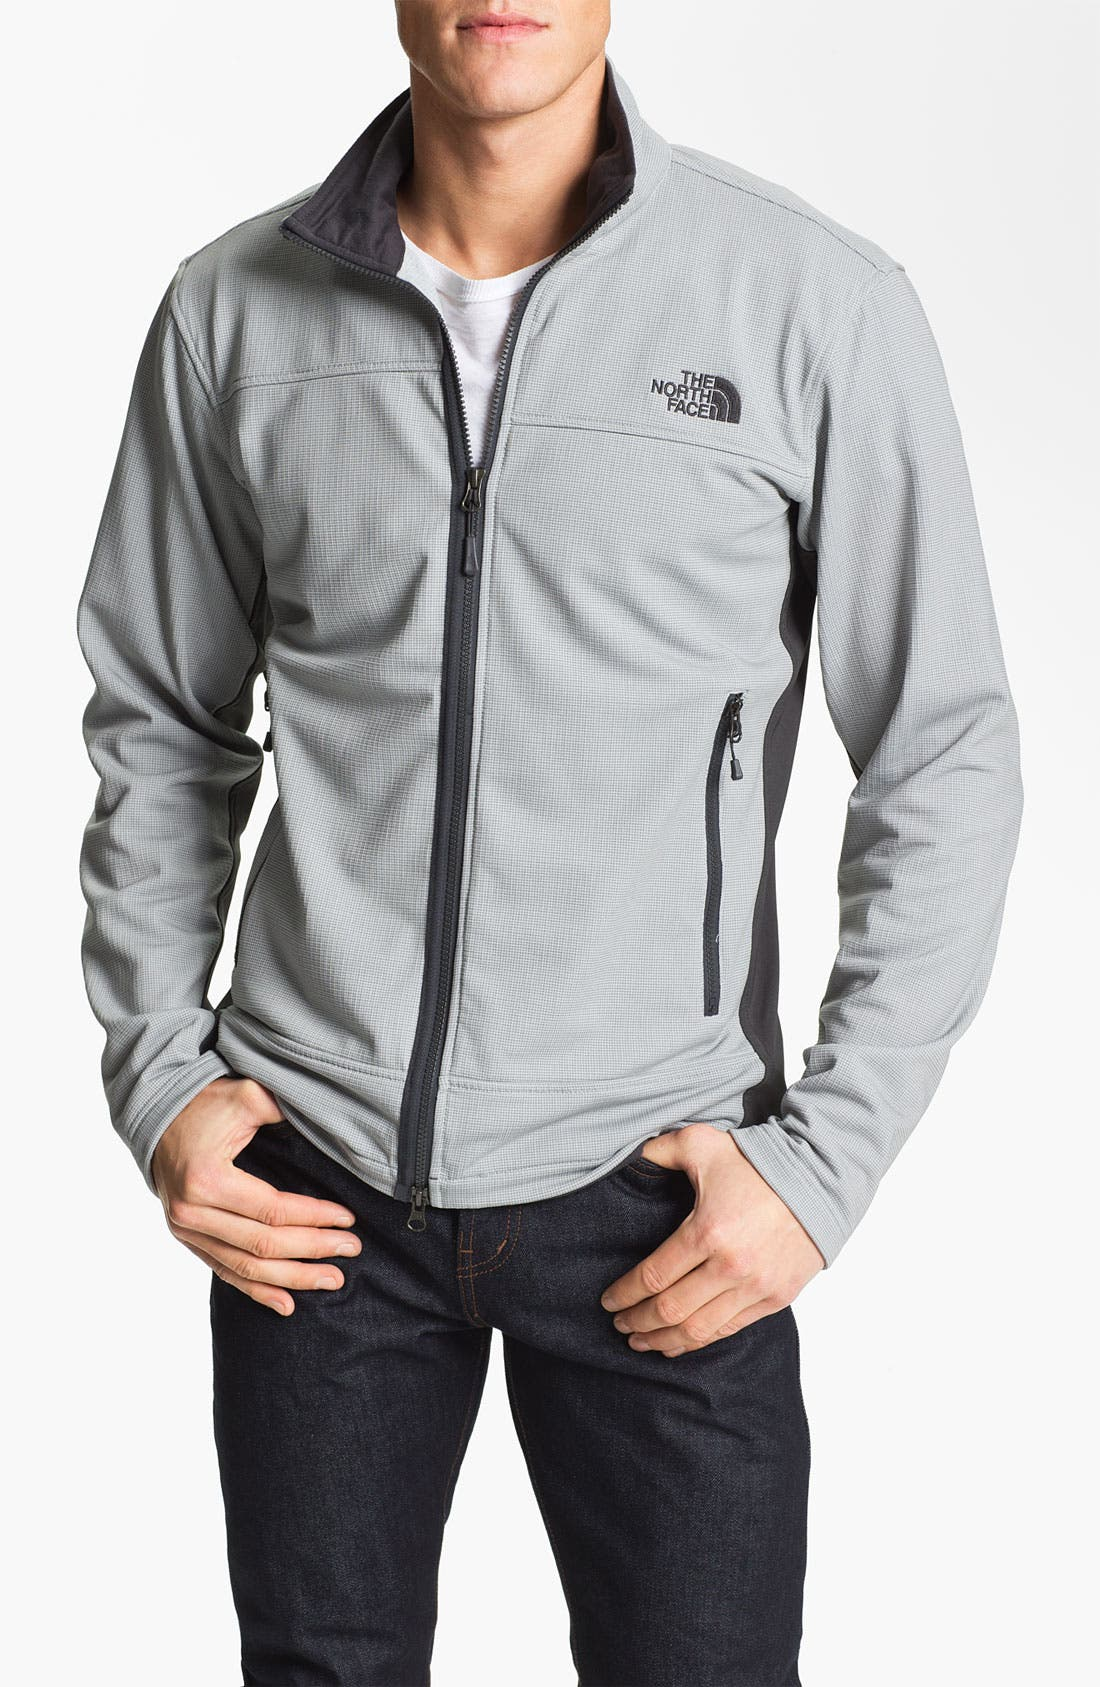 Alternate Image 1 Selected - The North Face 'Honed' Jacket